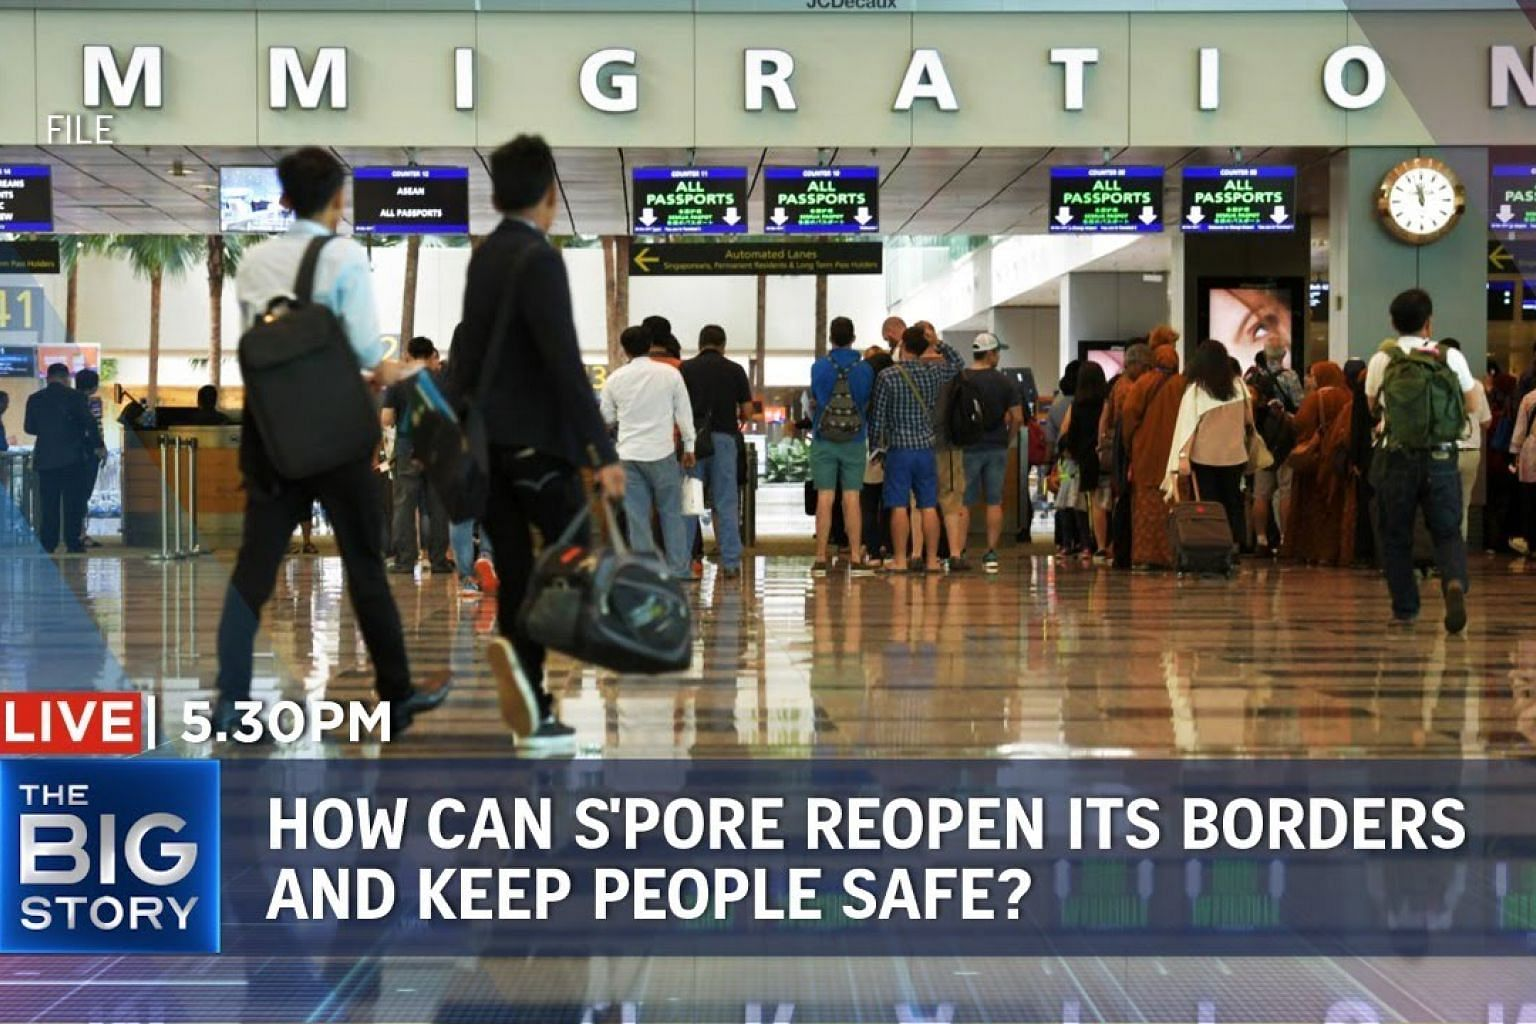 S'pore's balancing act for travel – reopening borders while keeping people safe | THE BIG STORY